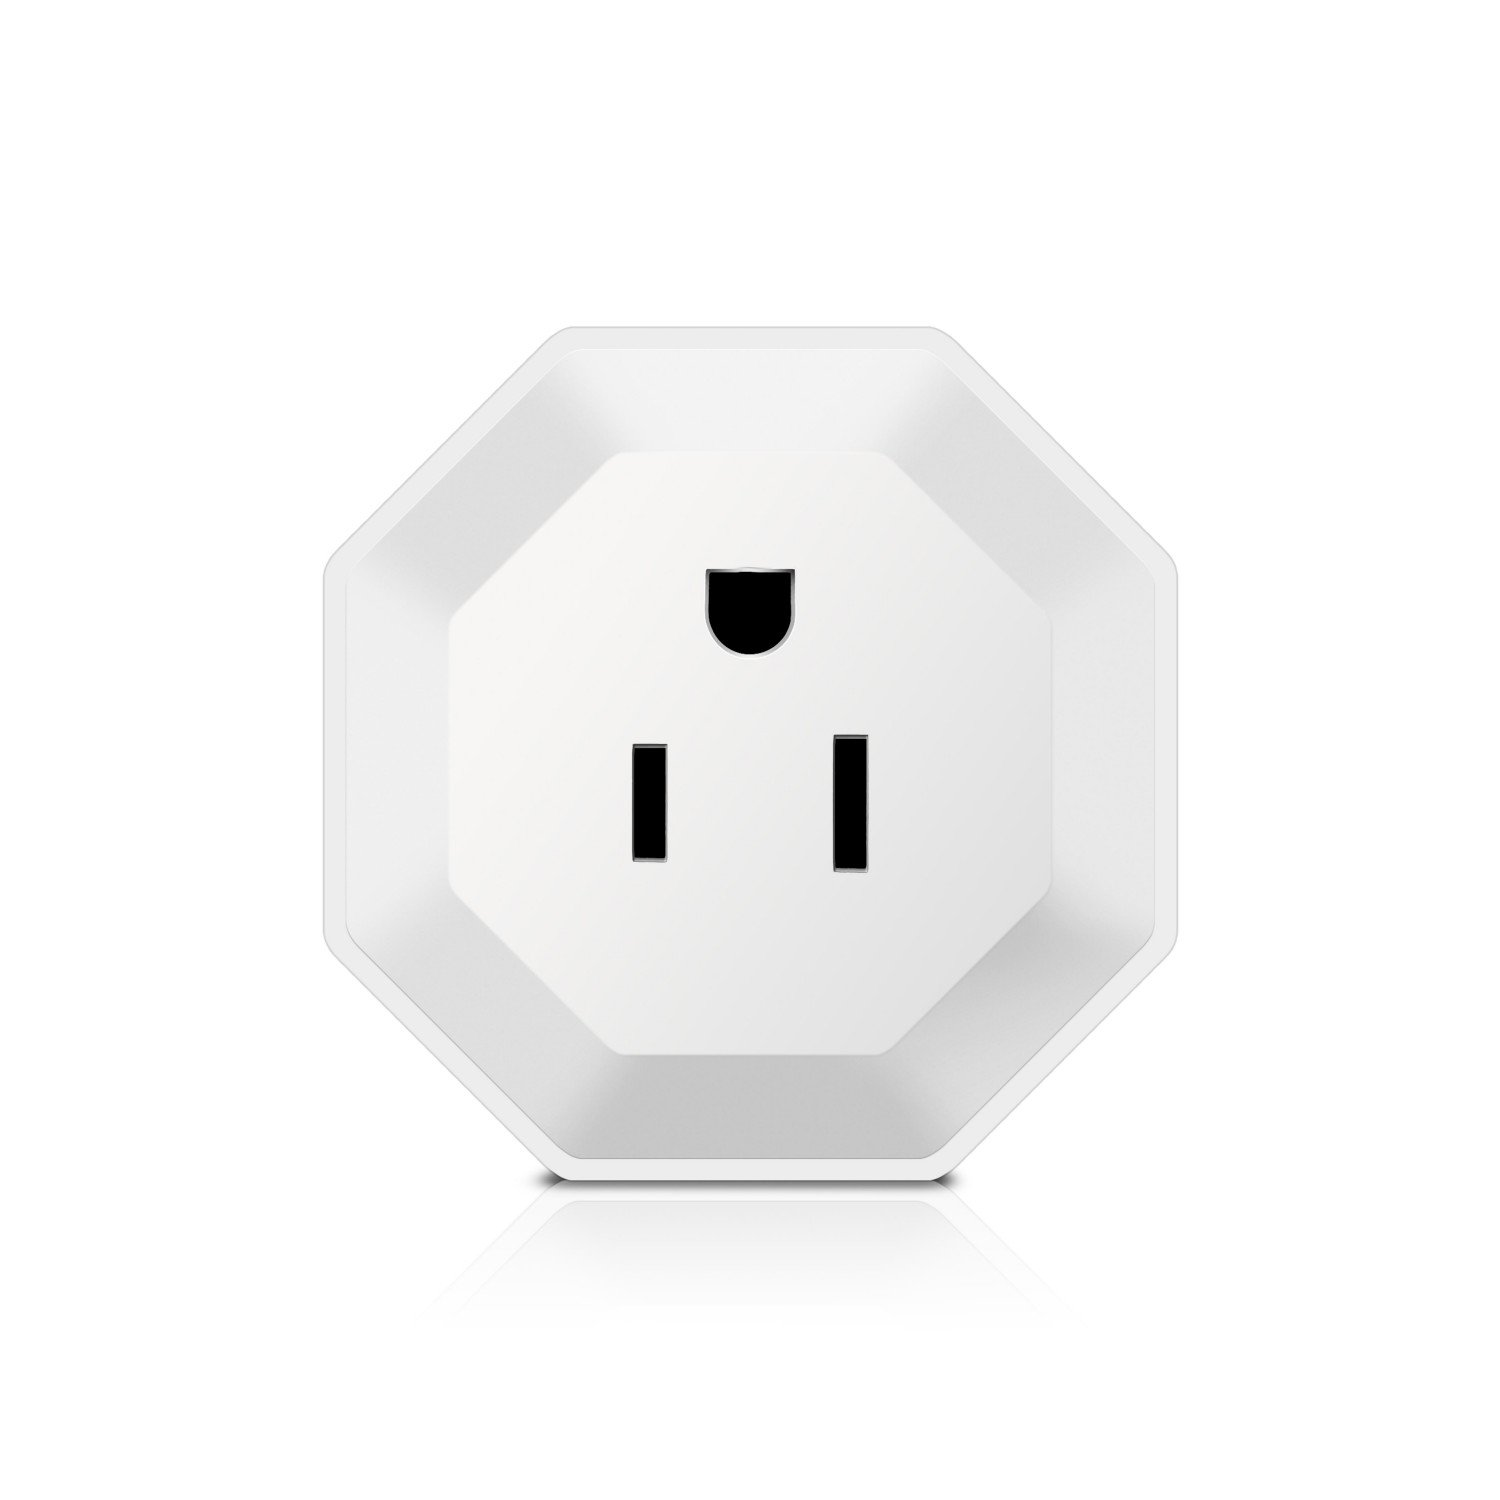 MJeck WiFi Smart Plug, Compatible with Alexa and Google Home, no hub required to voice control smart home devices, mini smart socket design (Mini Plug 03 - 1 Pack)